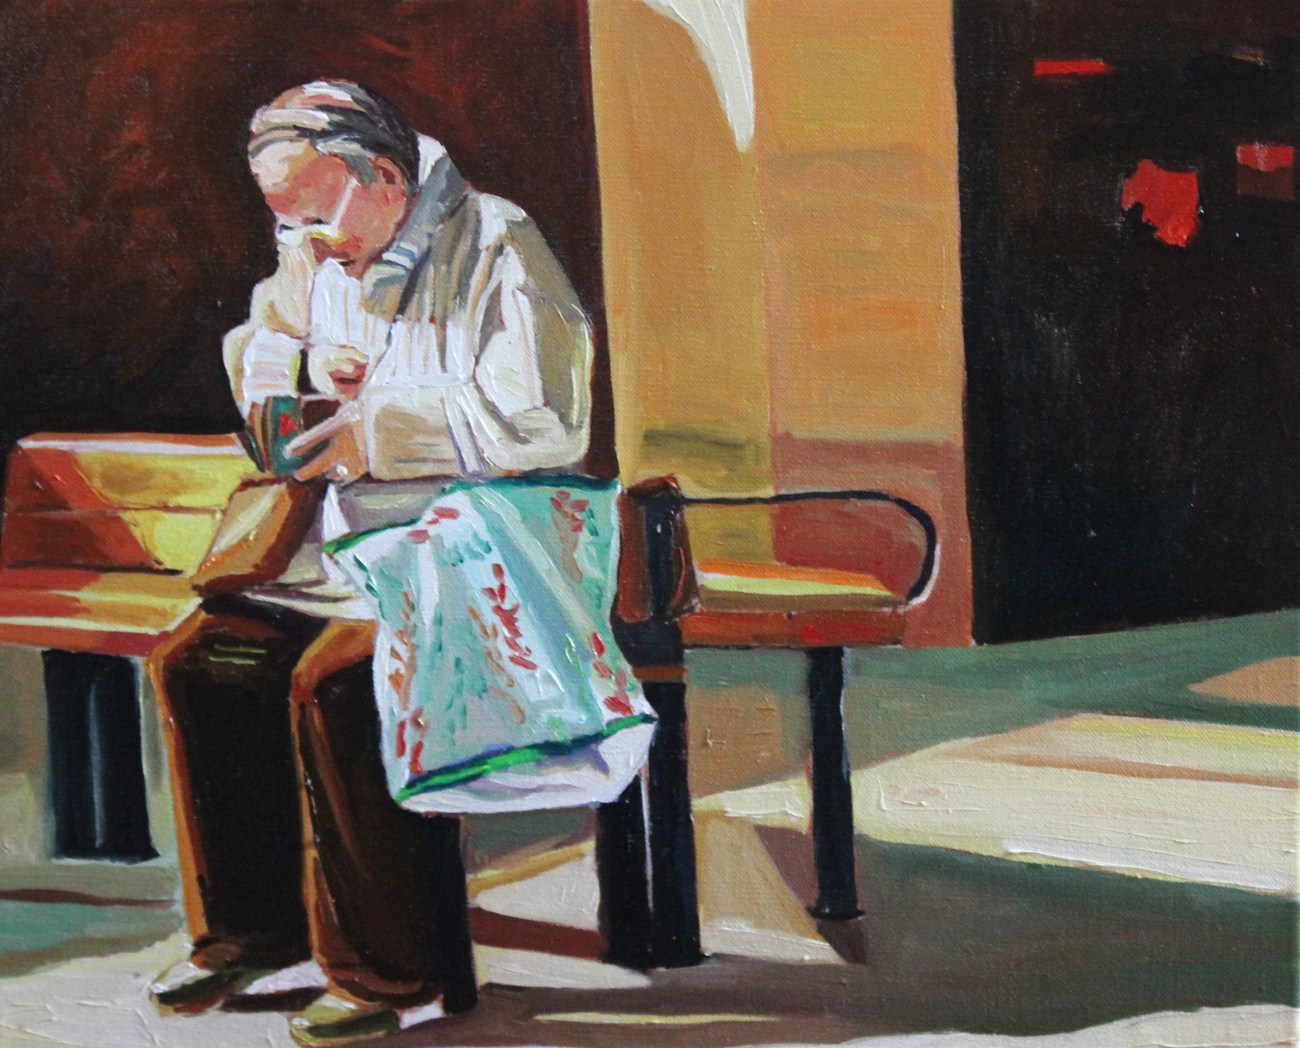 Oil painting of woman waiting for the bus.